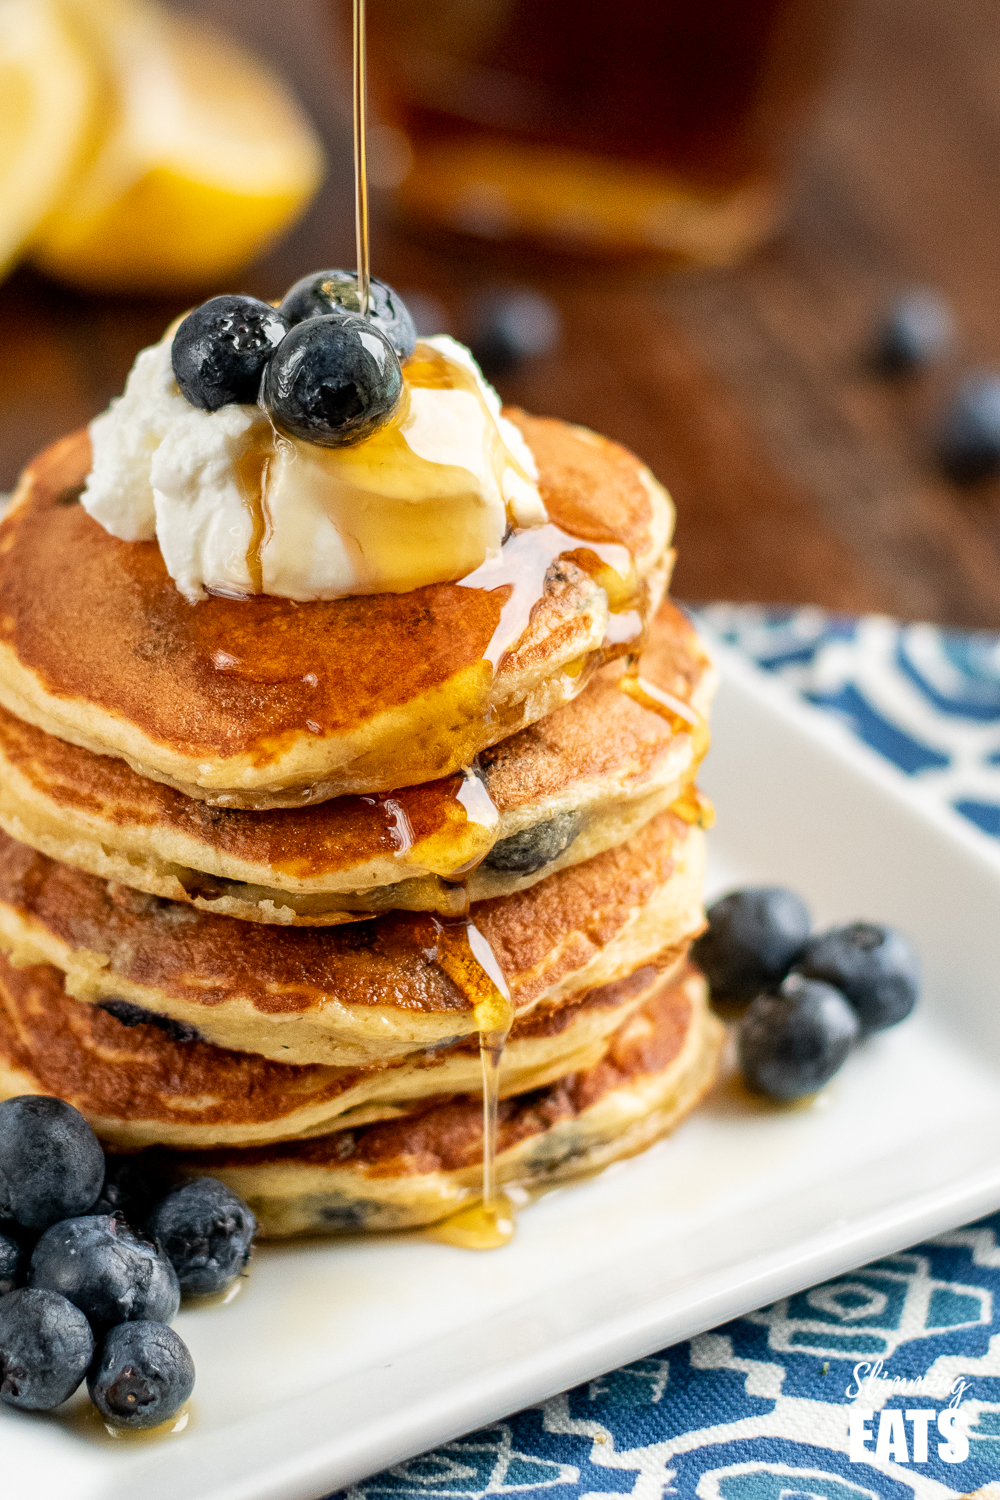 close up of maple syrup being drizzled over lemon blueberry oat pancakes on white plate